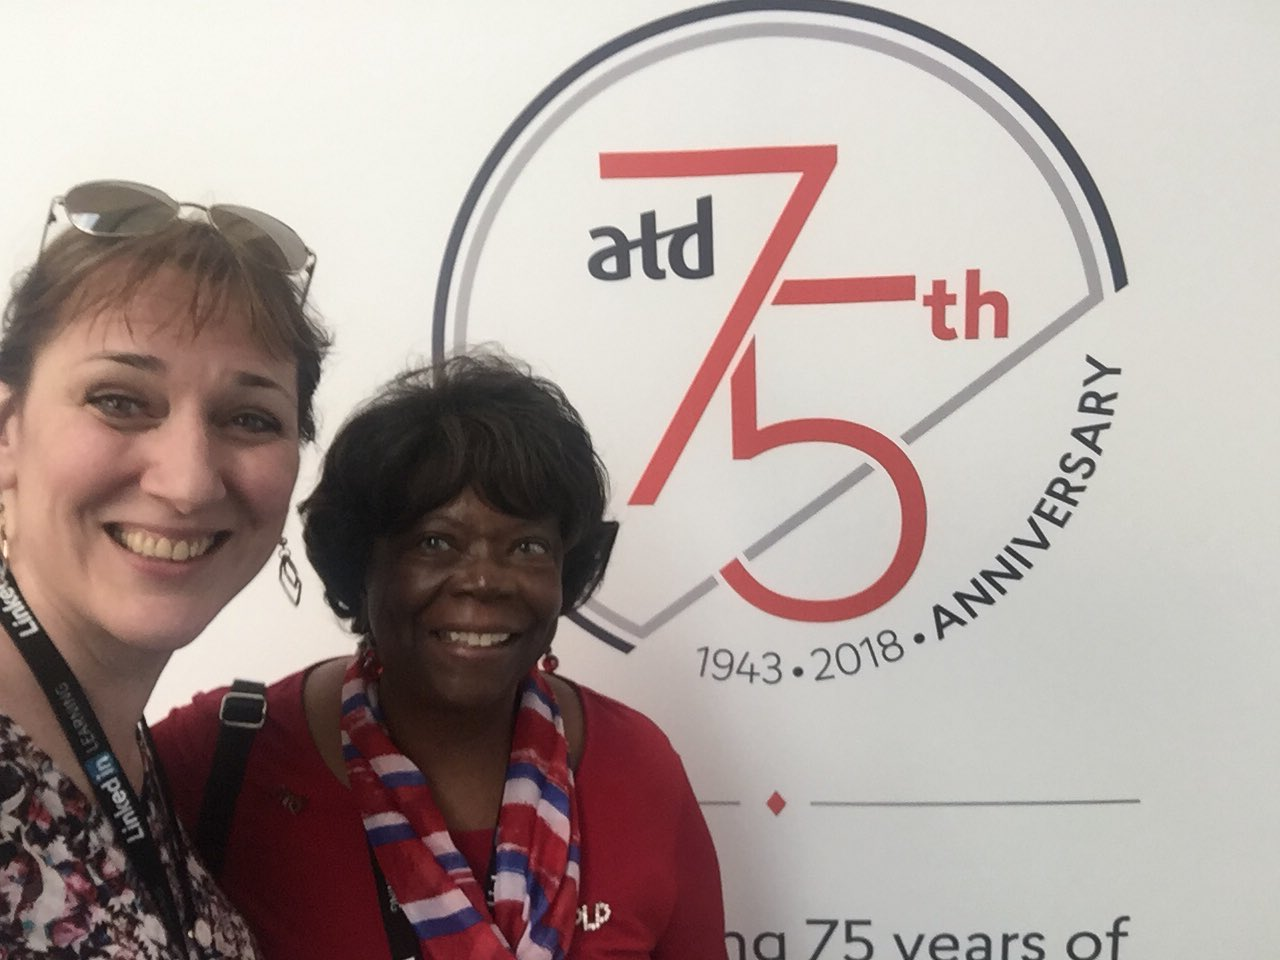 My annual ATD conference would not be complete without a photo and conversation with long-time chapter leader and #CPLP Deborah Covin Wilson @debcovinwilson ! #atd2018 https://t.co/NsfaRdHVxN